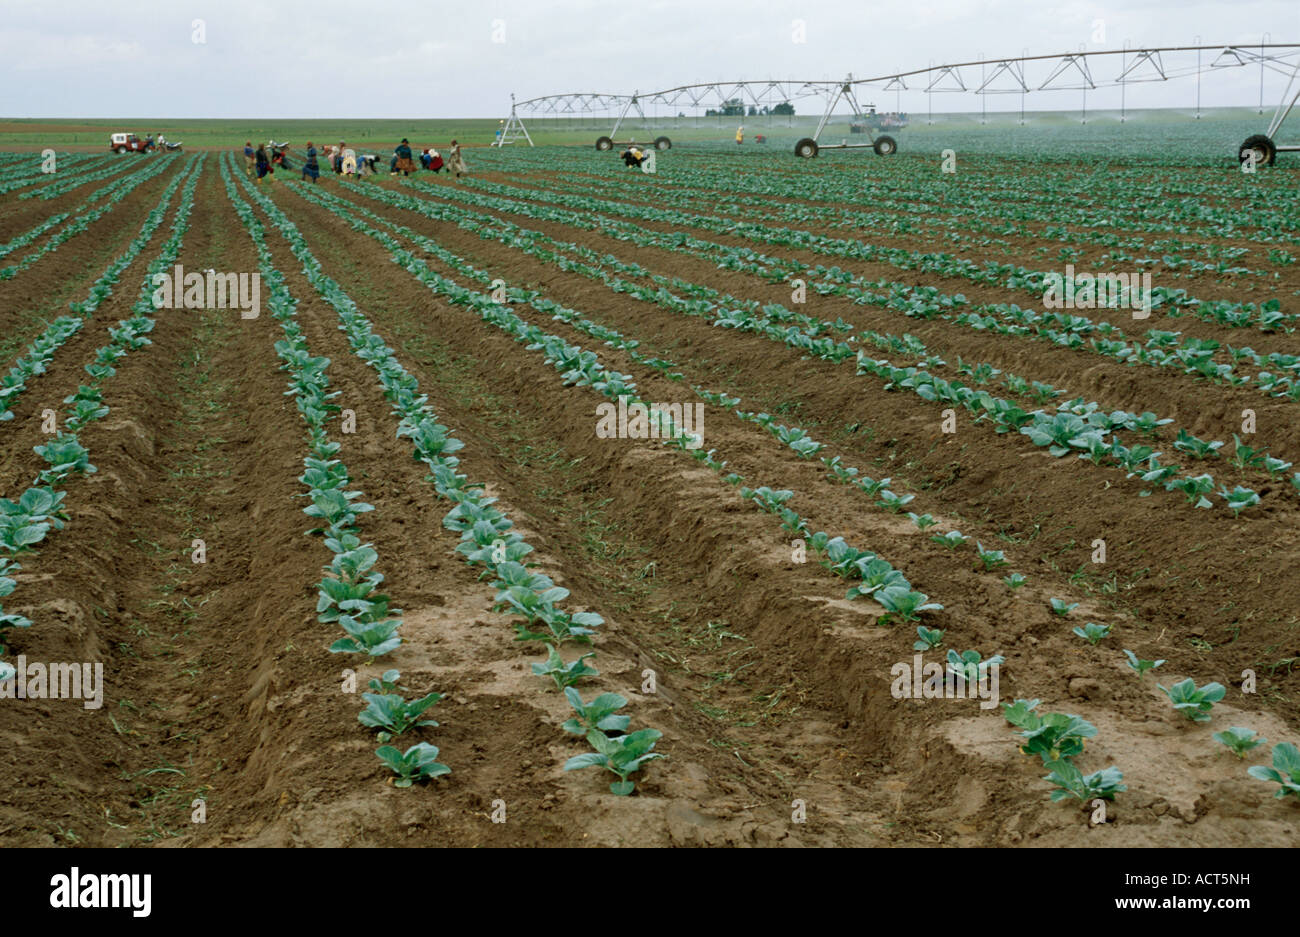 A scene showing rows of cabbages in a field with farm labourers and a centre pivot irrigation rig in the distance - Stock Image